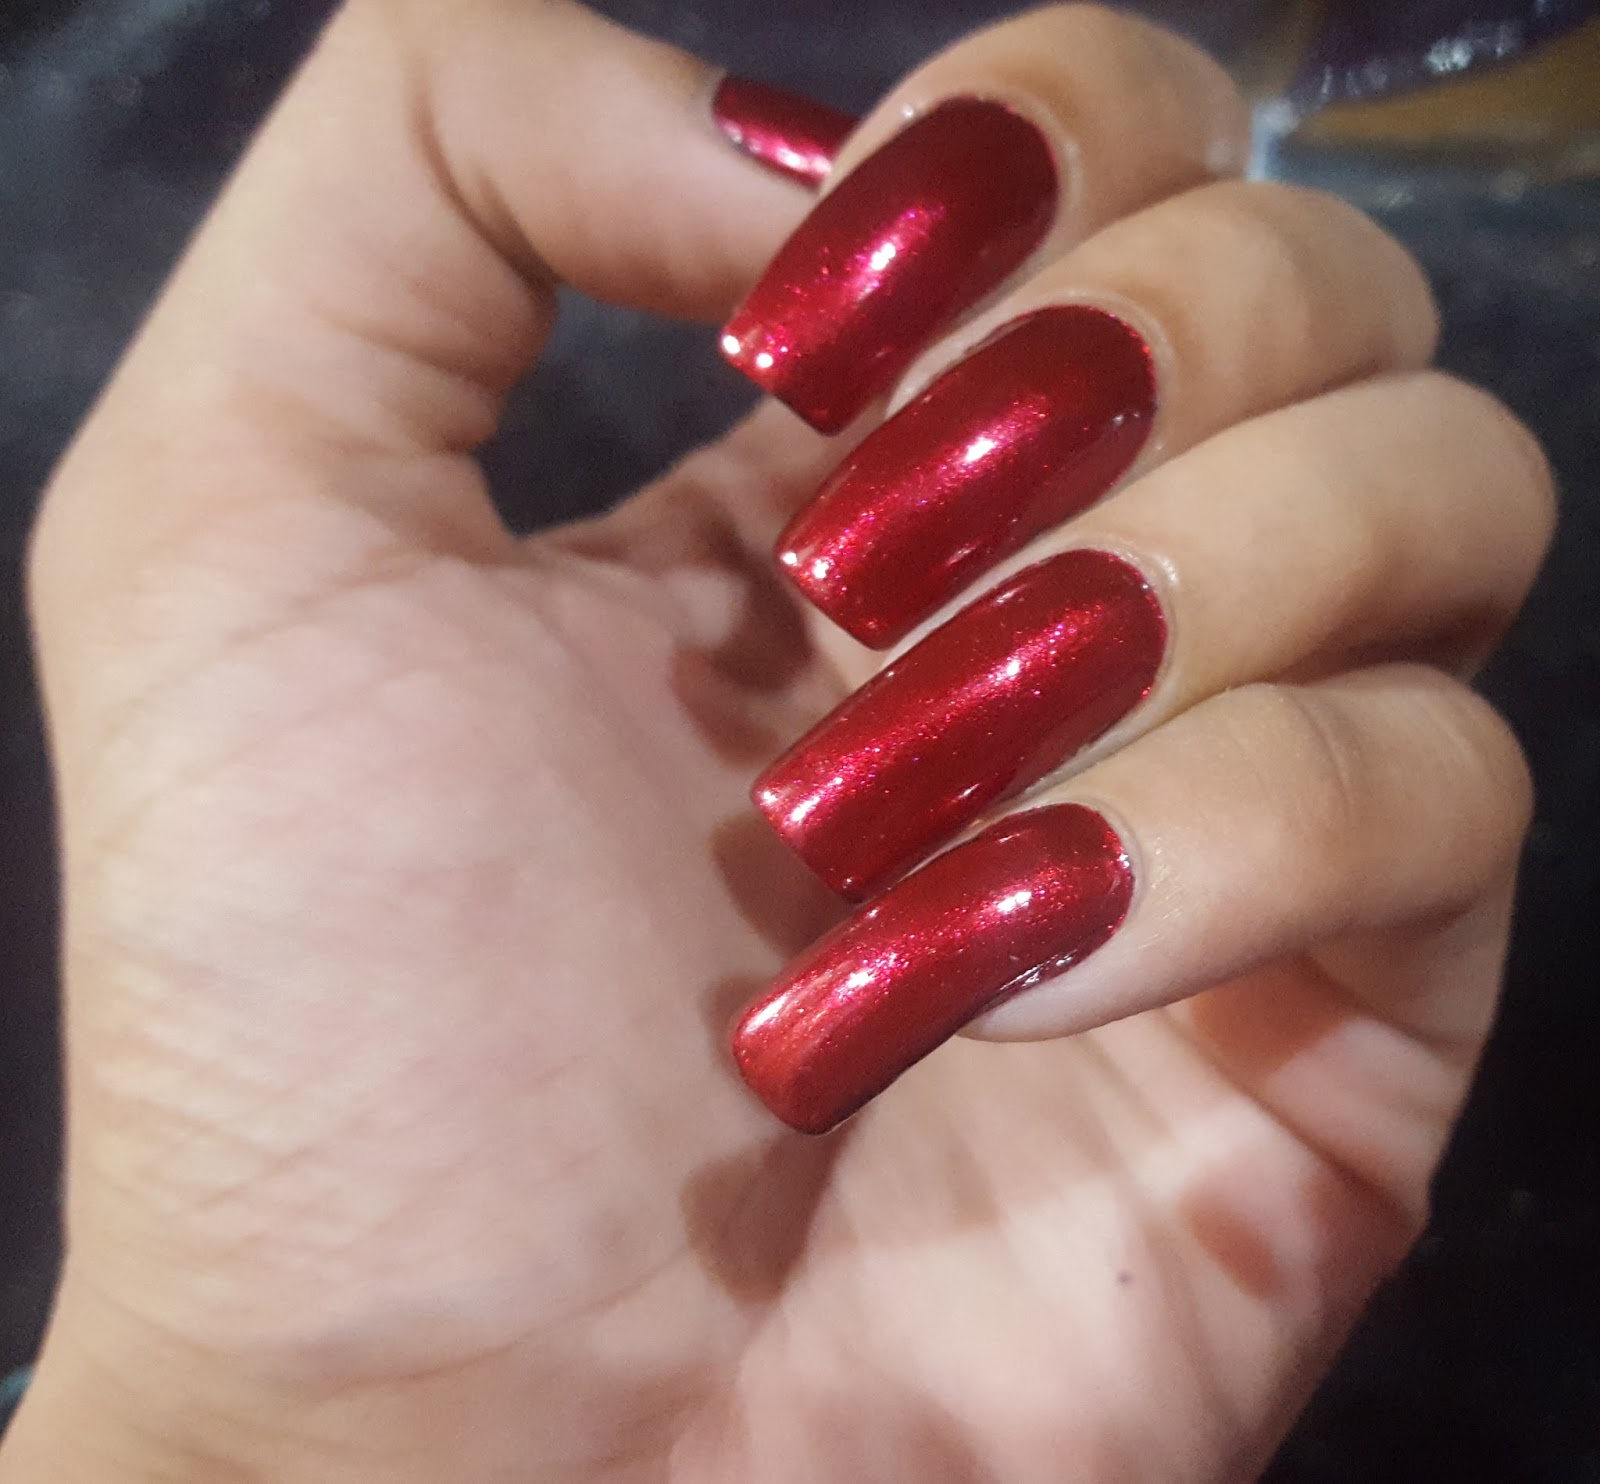 China Glaze Nail Polish Red 2013 Happy Holiglaze